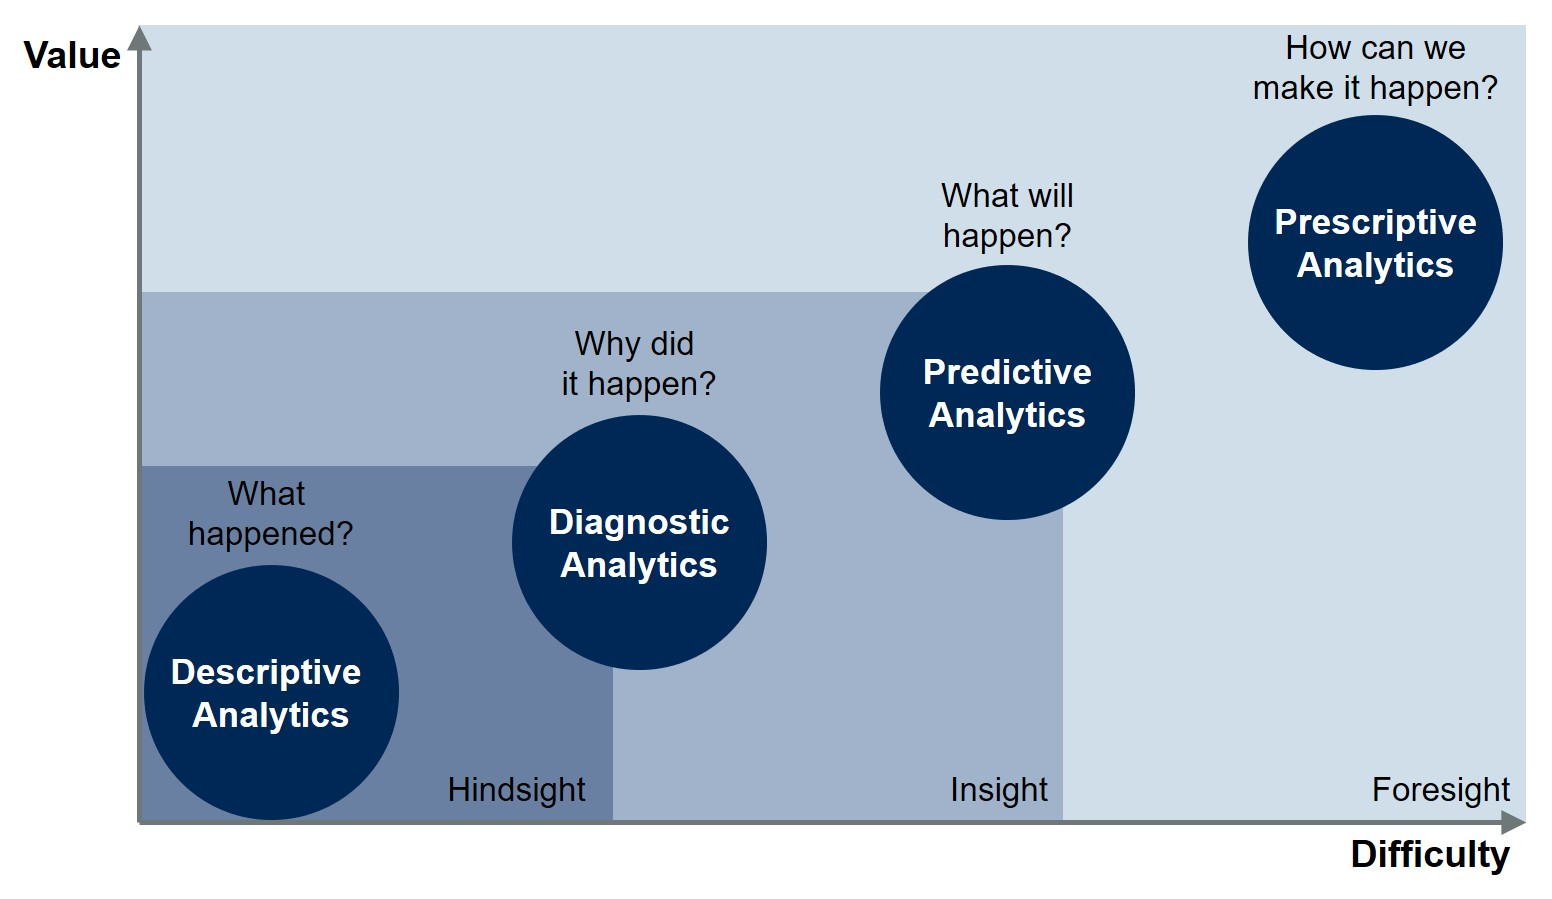 You're likely investing a lot in marketing analytics, but ...